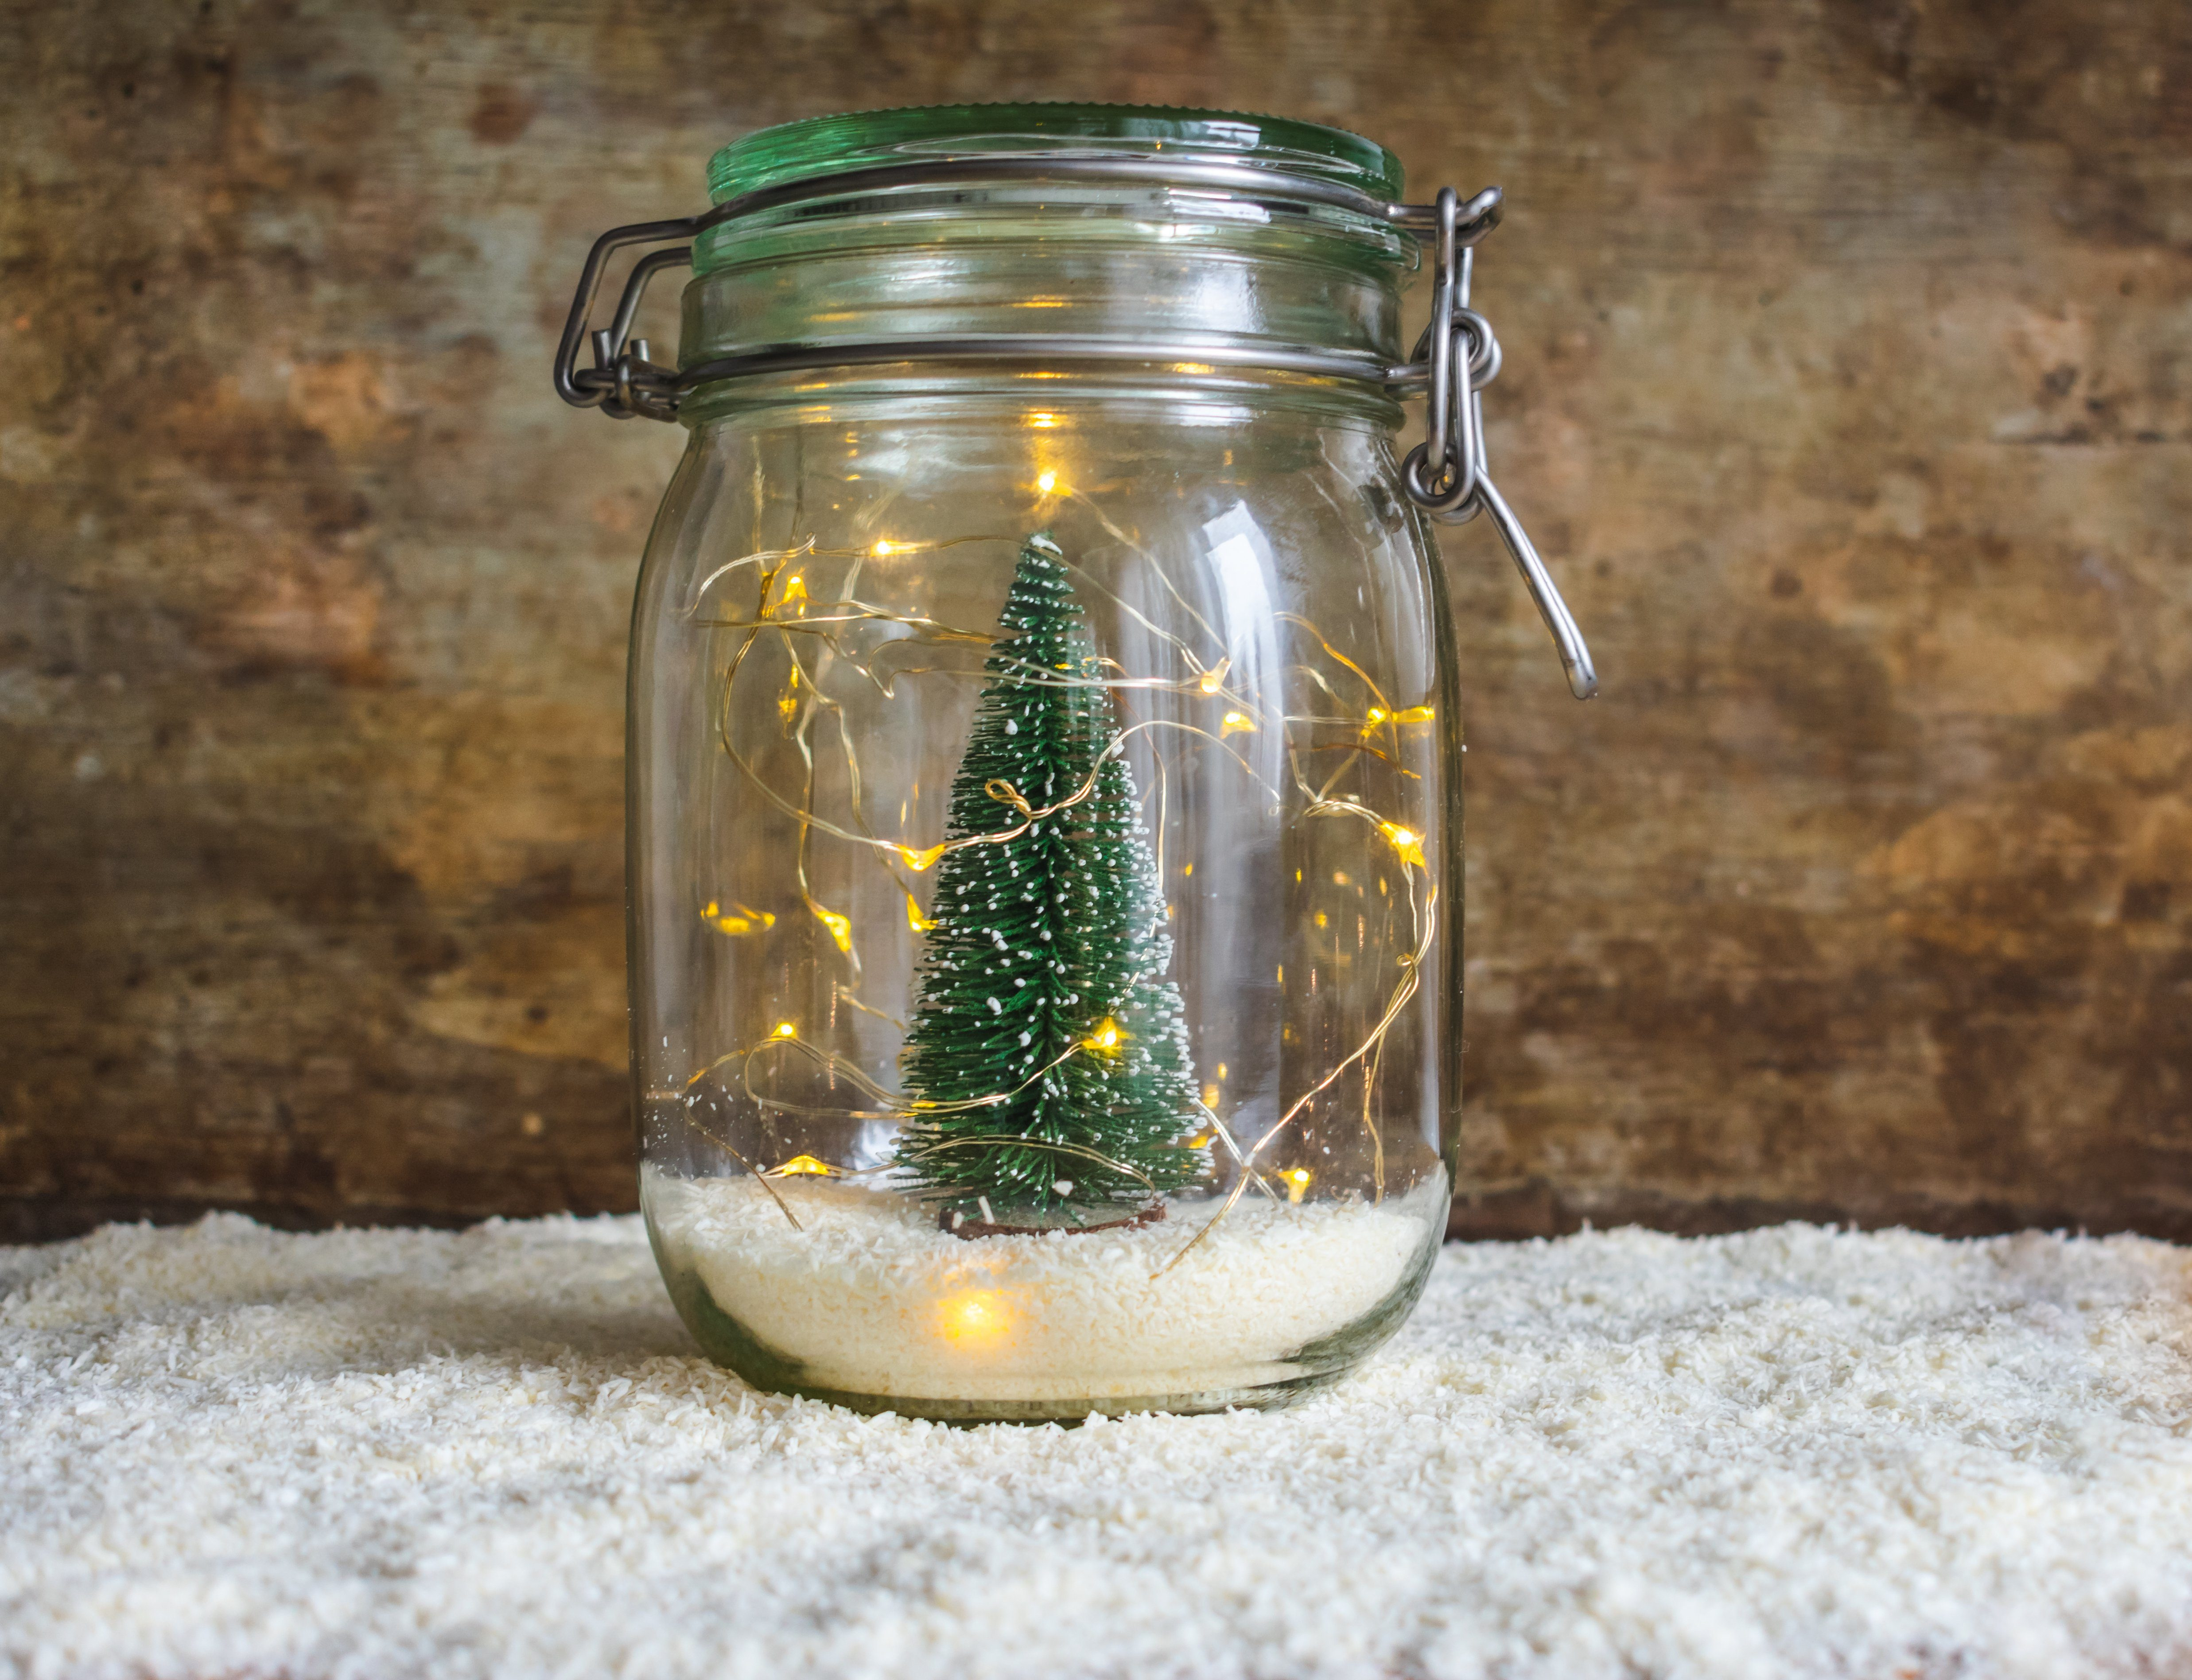 View of a jar with snow and a green Christmas tree decoration and Christmas lights on white snow and a wooden rustic background with copy space. Christmas or winter interior decoration or design